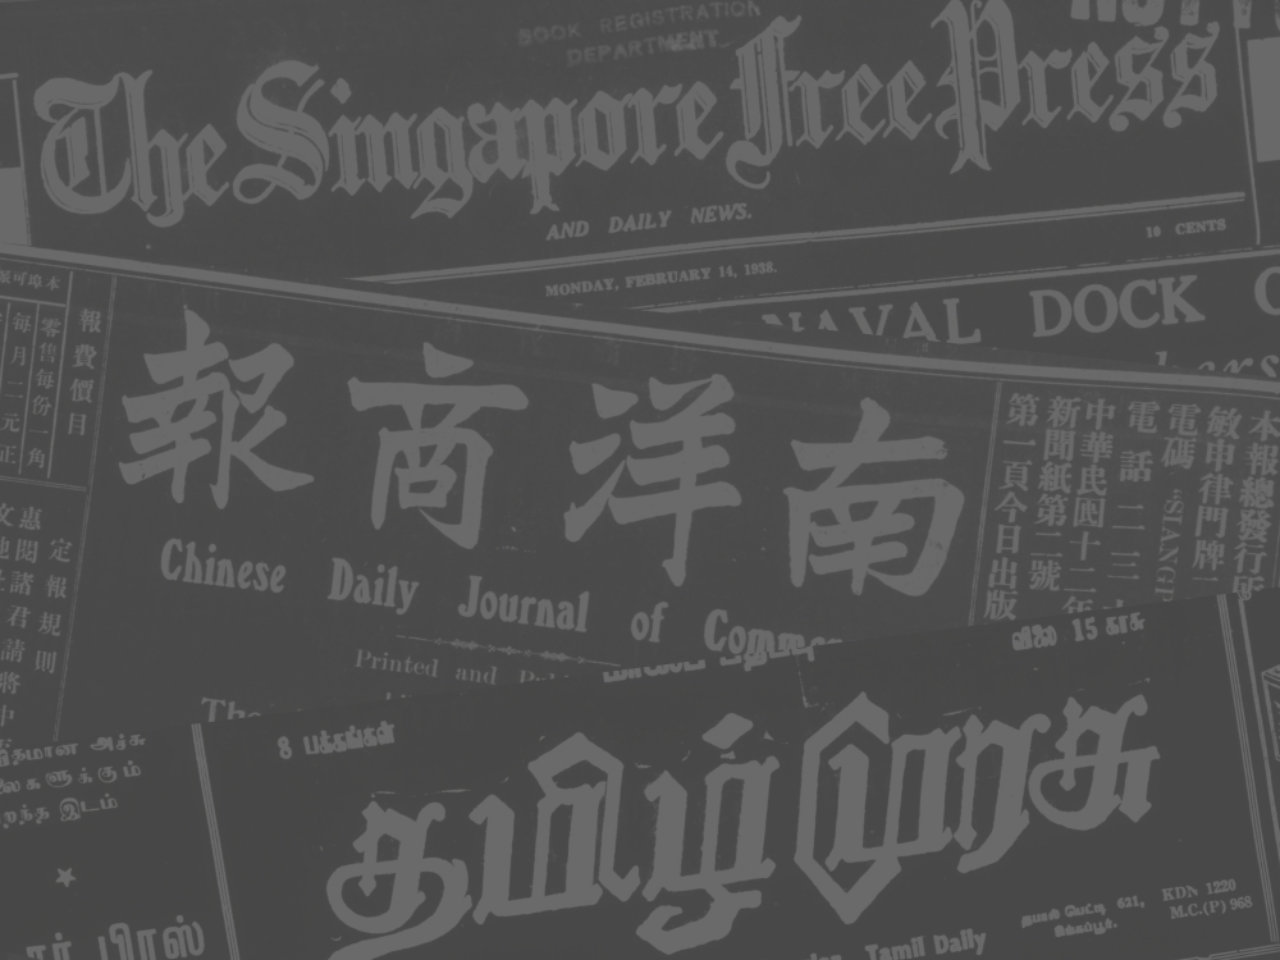 Singapore Free Press front page